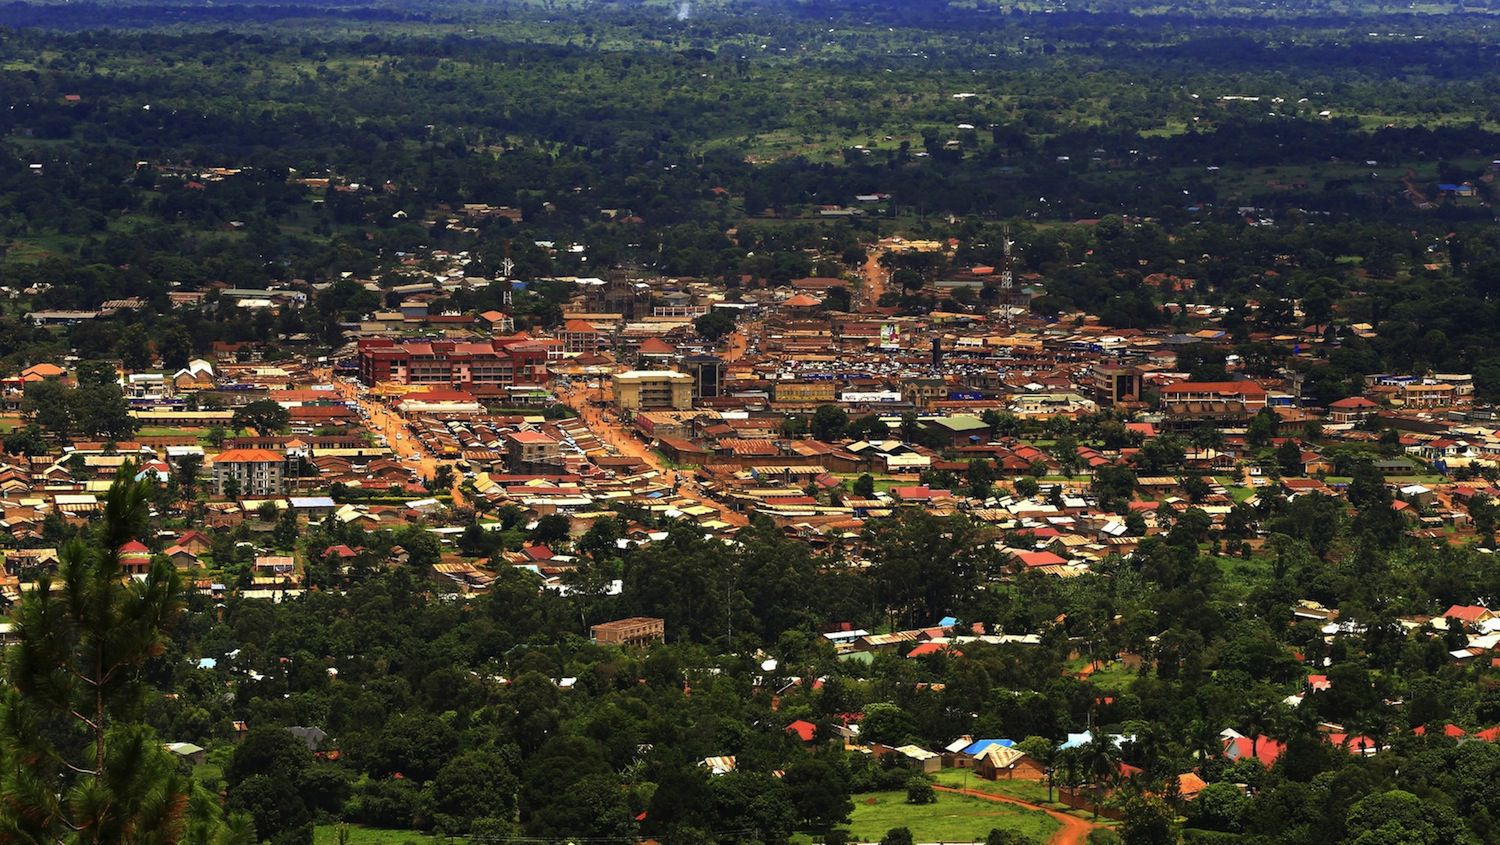 Uganda's oil boom has transformed the town of Hoima (Photo/James Akena)